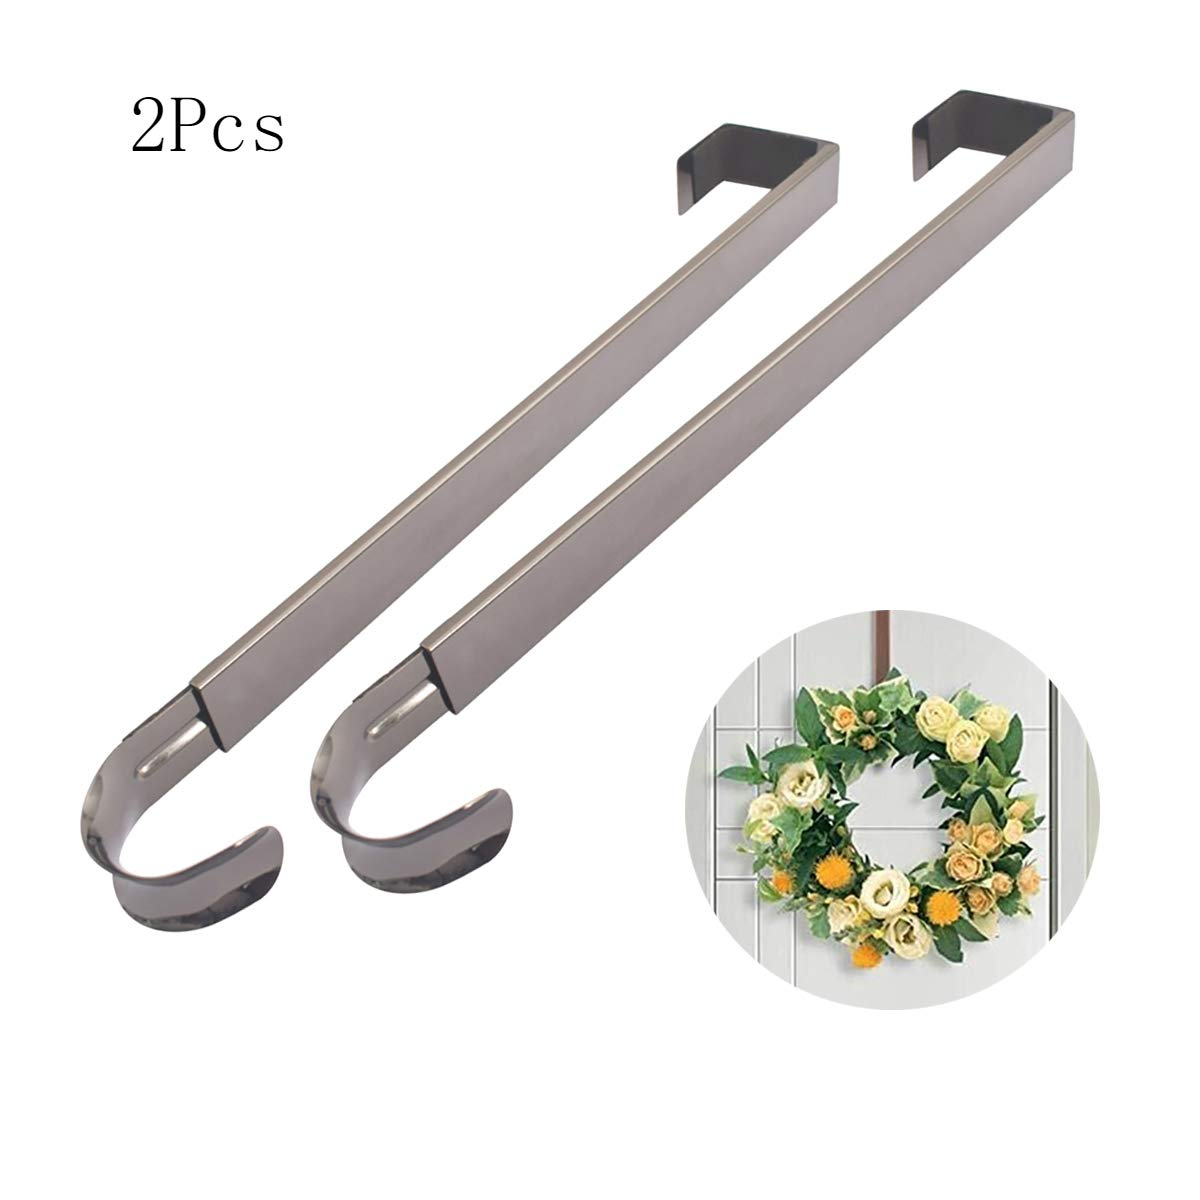 2Krmstr 2 Pcs Adjustable Wreath Holder,Wreath Hanger for Front Door,Metal Hook Hangers for Christmas Wreath(15.7 x 3.7in) by 2Krmstr